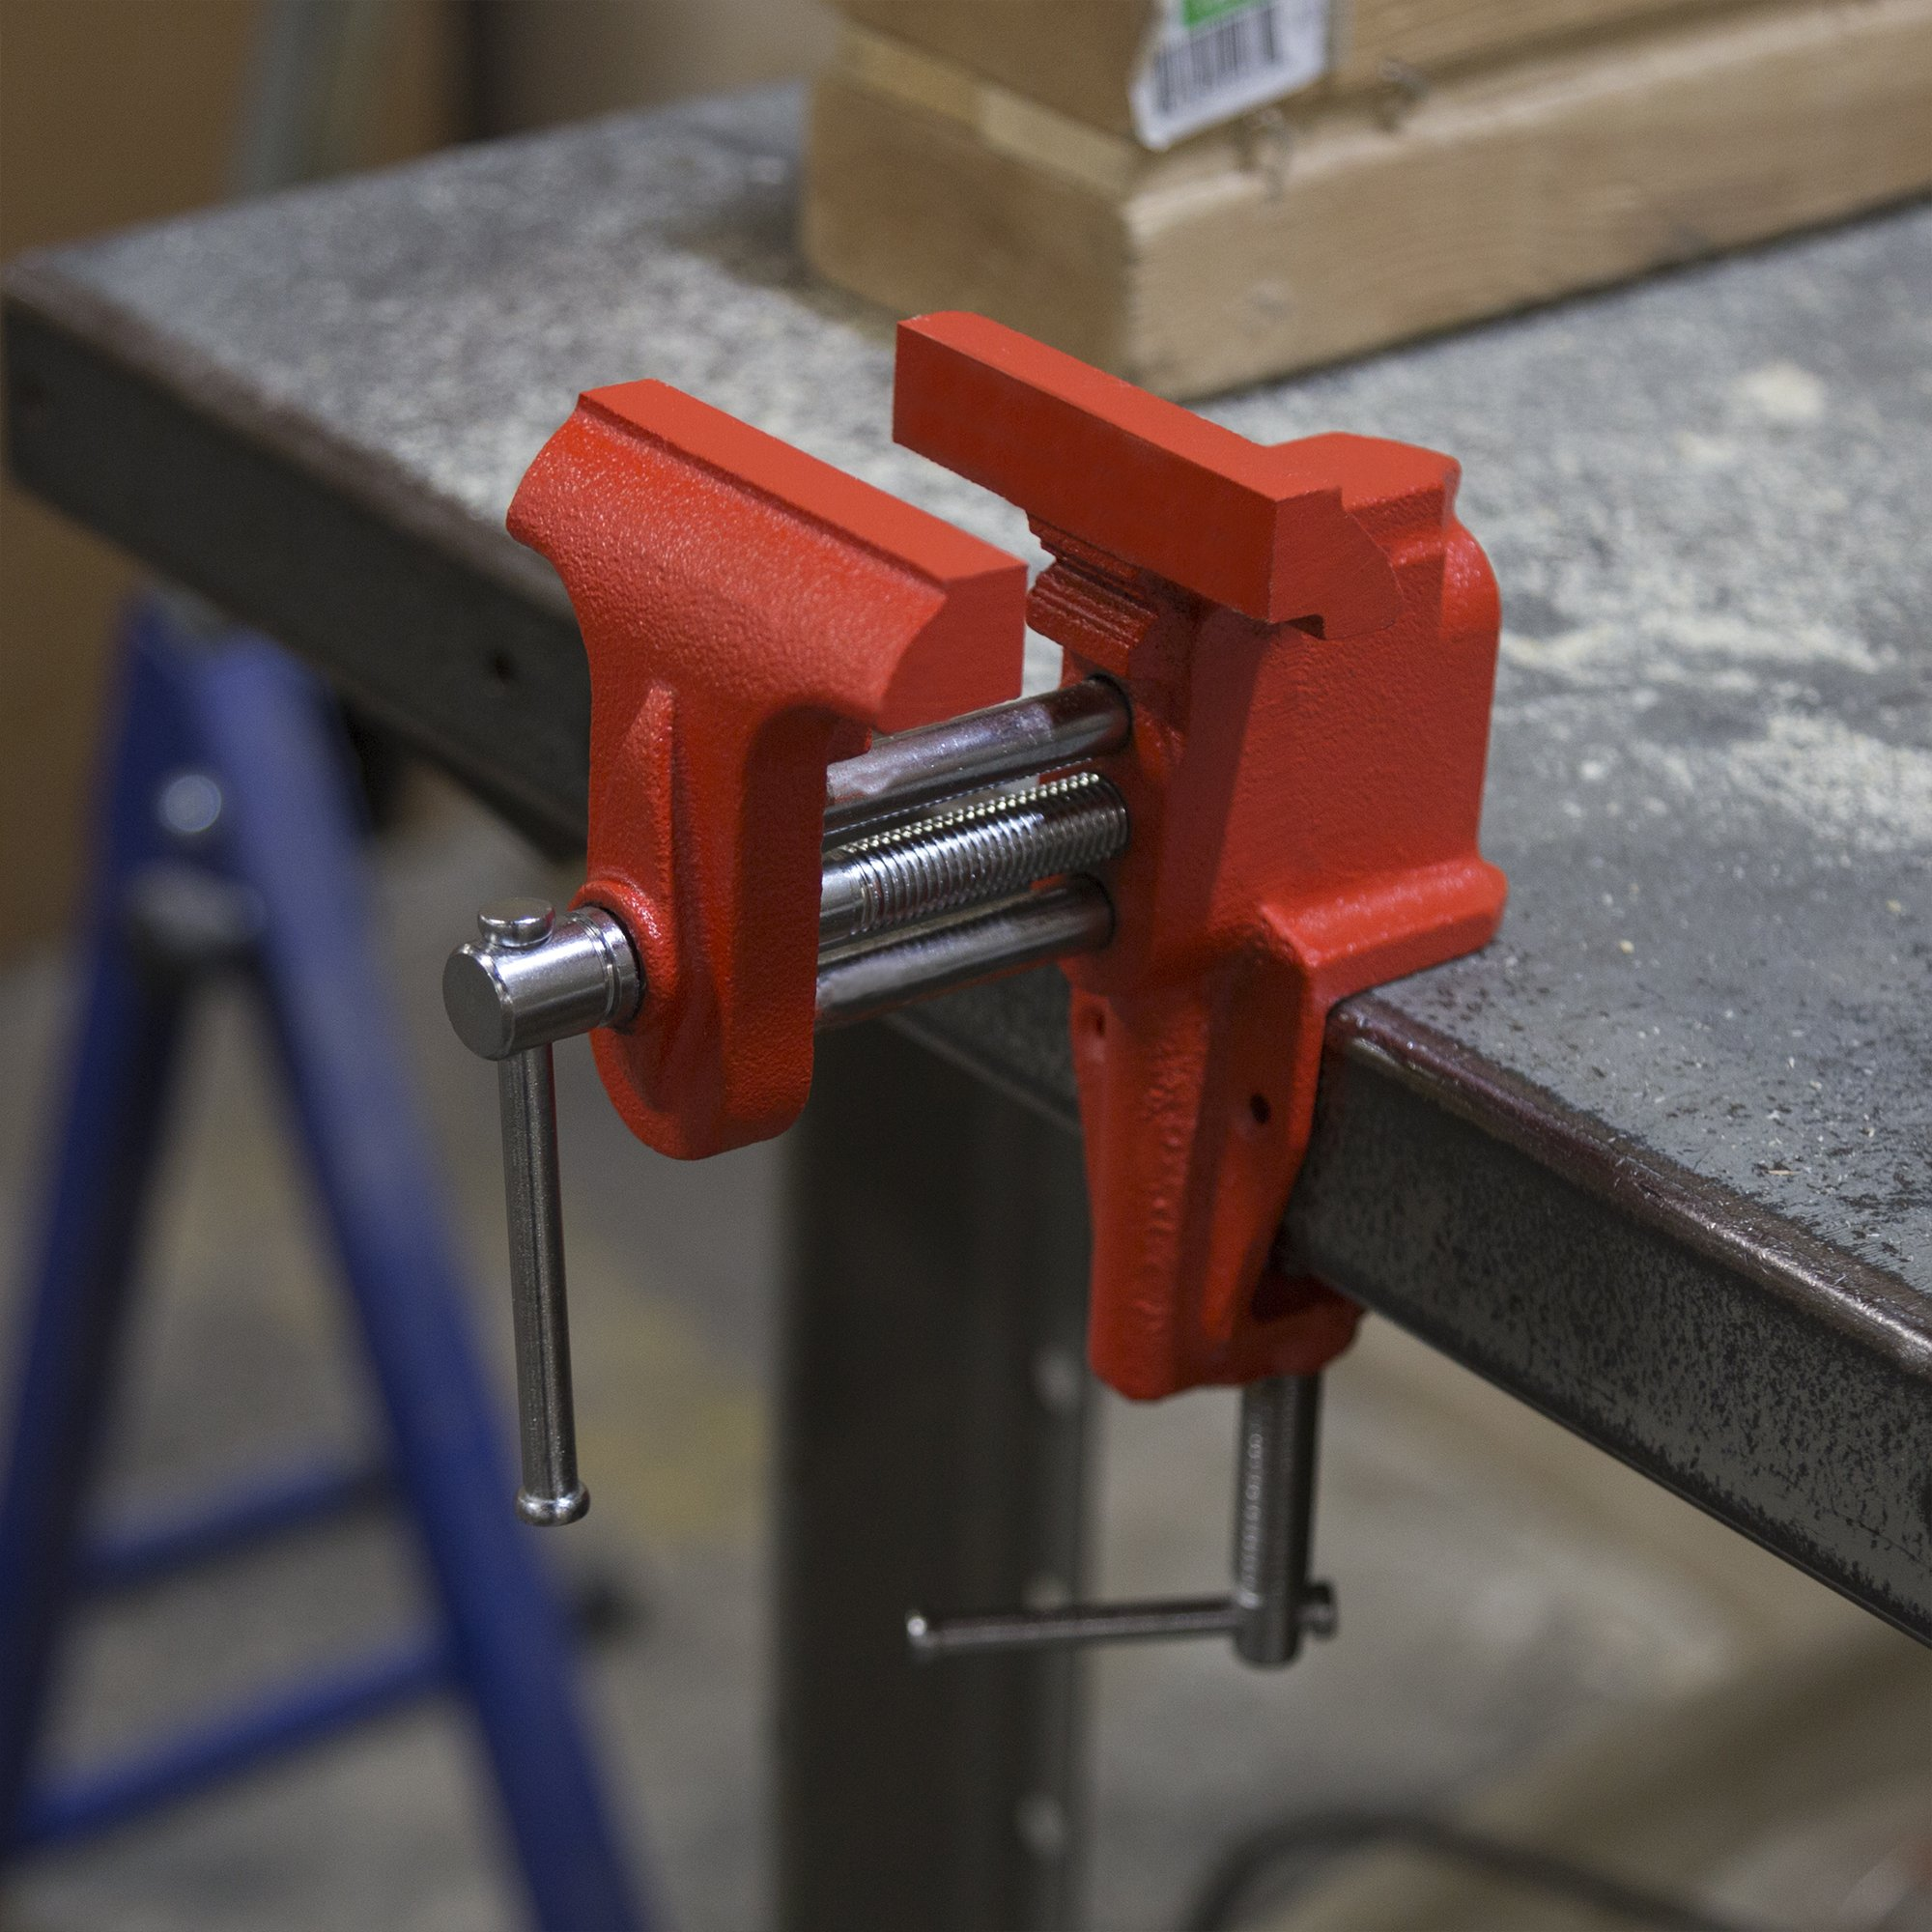 """Stalwart Clamp On Vise with 3 Inch """"V"""" Jaw for Table and Bench- Cast Iron Workbench Clamping Tool for Precision, DIY, Small Repairs and More by Stalwart (Image #3)"""